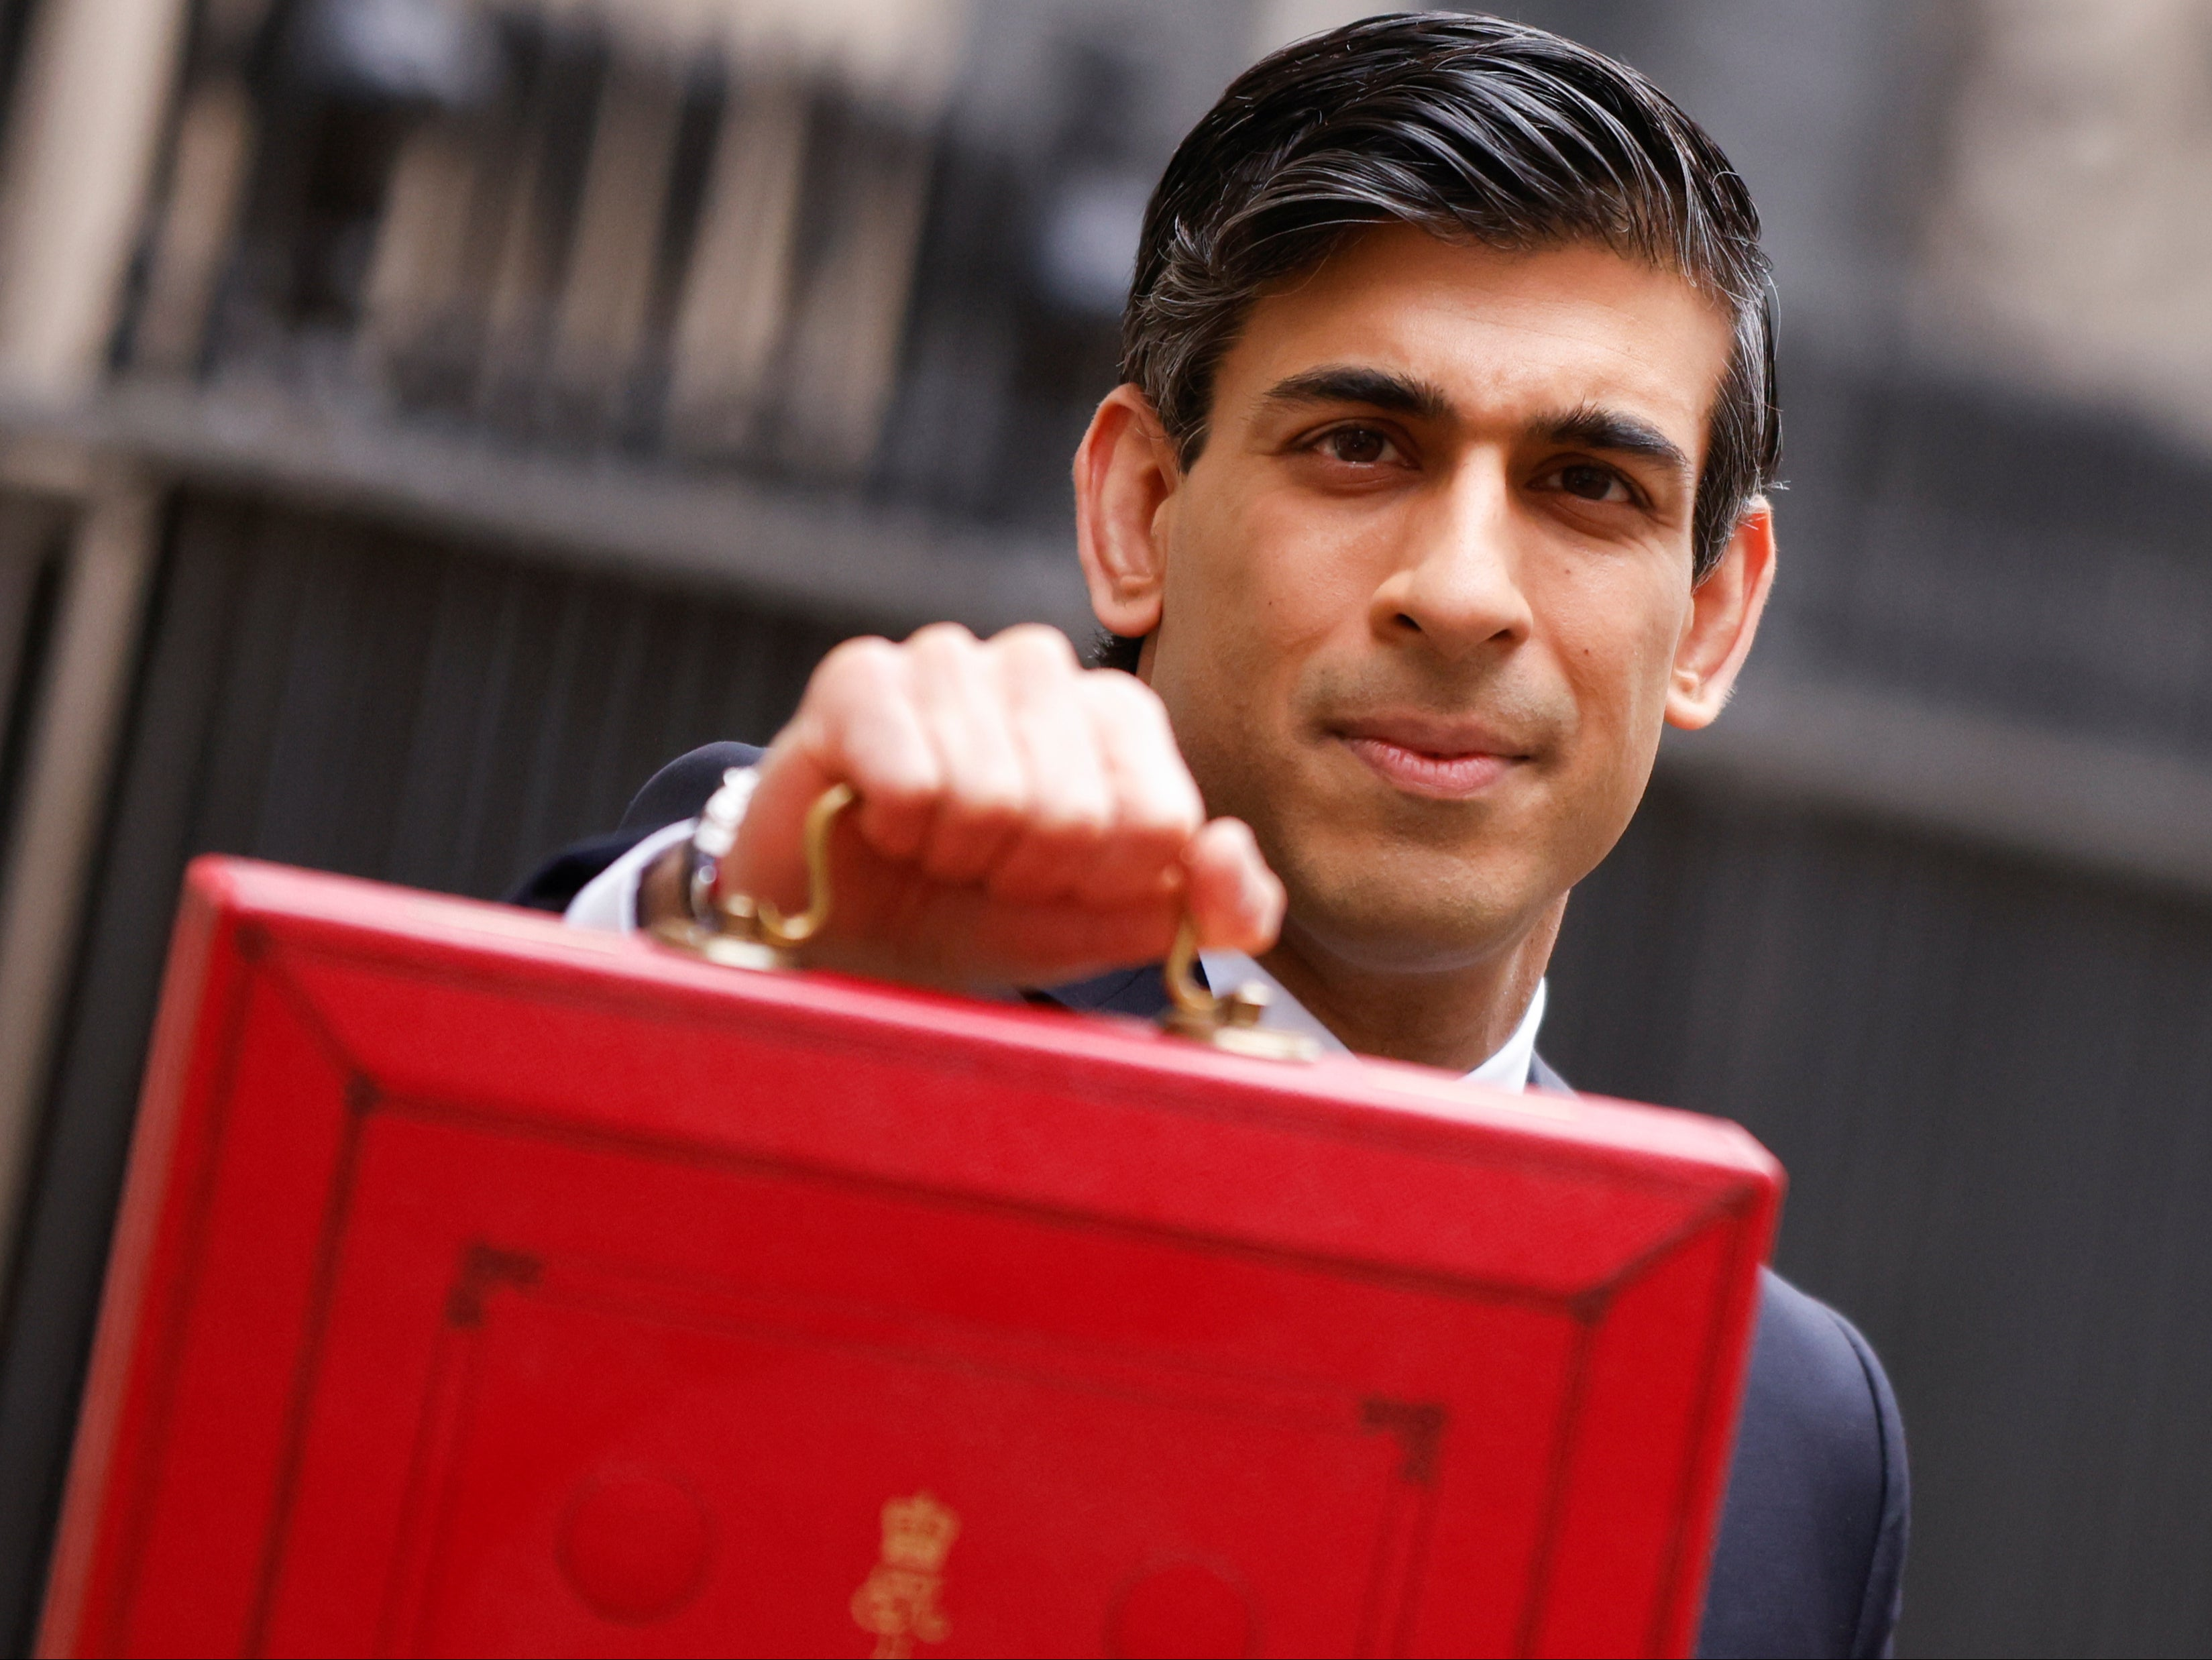 How the internet reacted to Rishi Sunak's 2021 Budget announcement